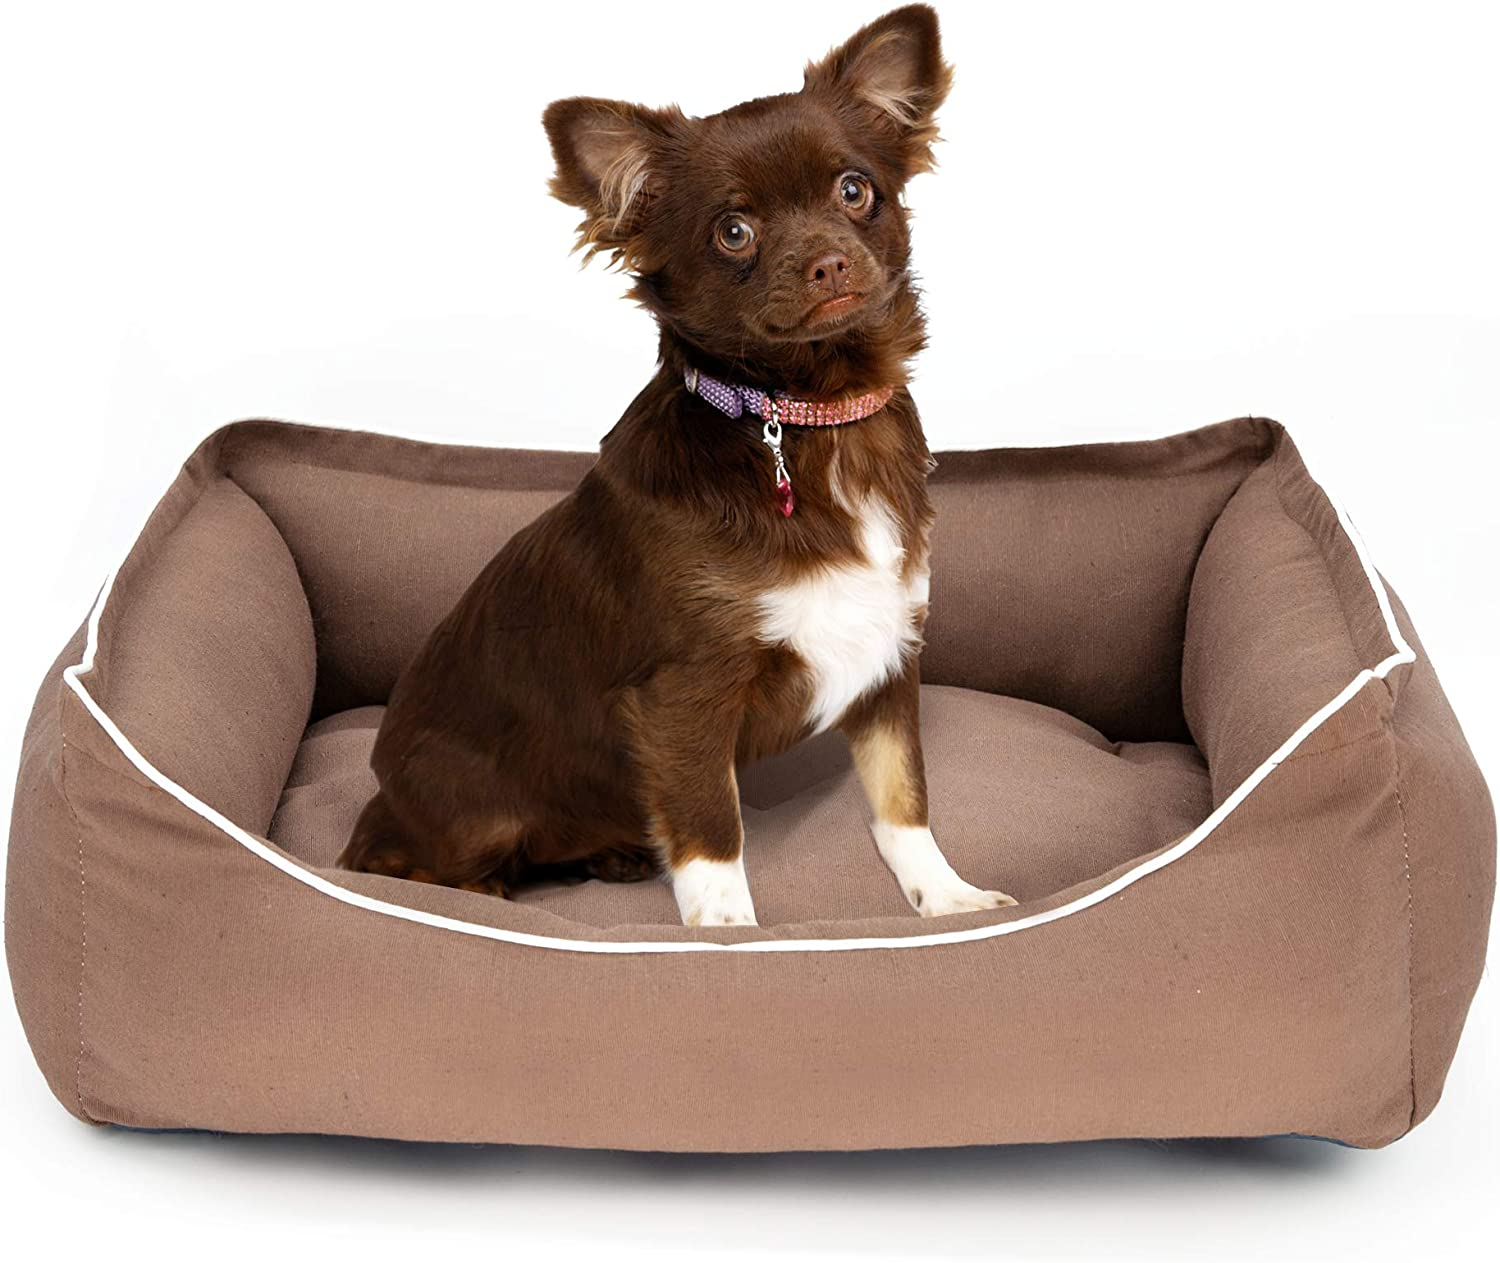 PETKING  Pet Puppy Dog Cat Kitten soft warm Dog Bed Large, Brown